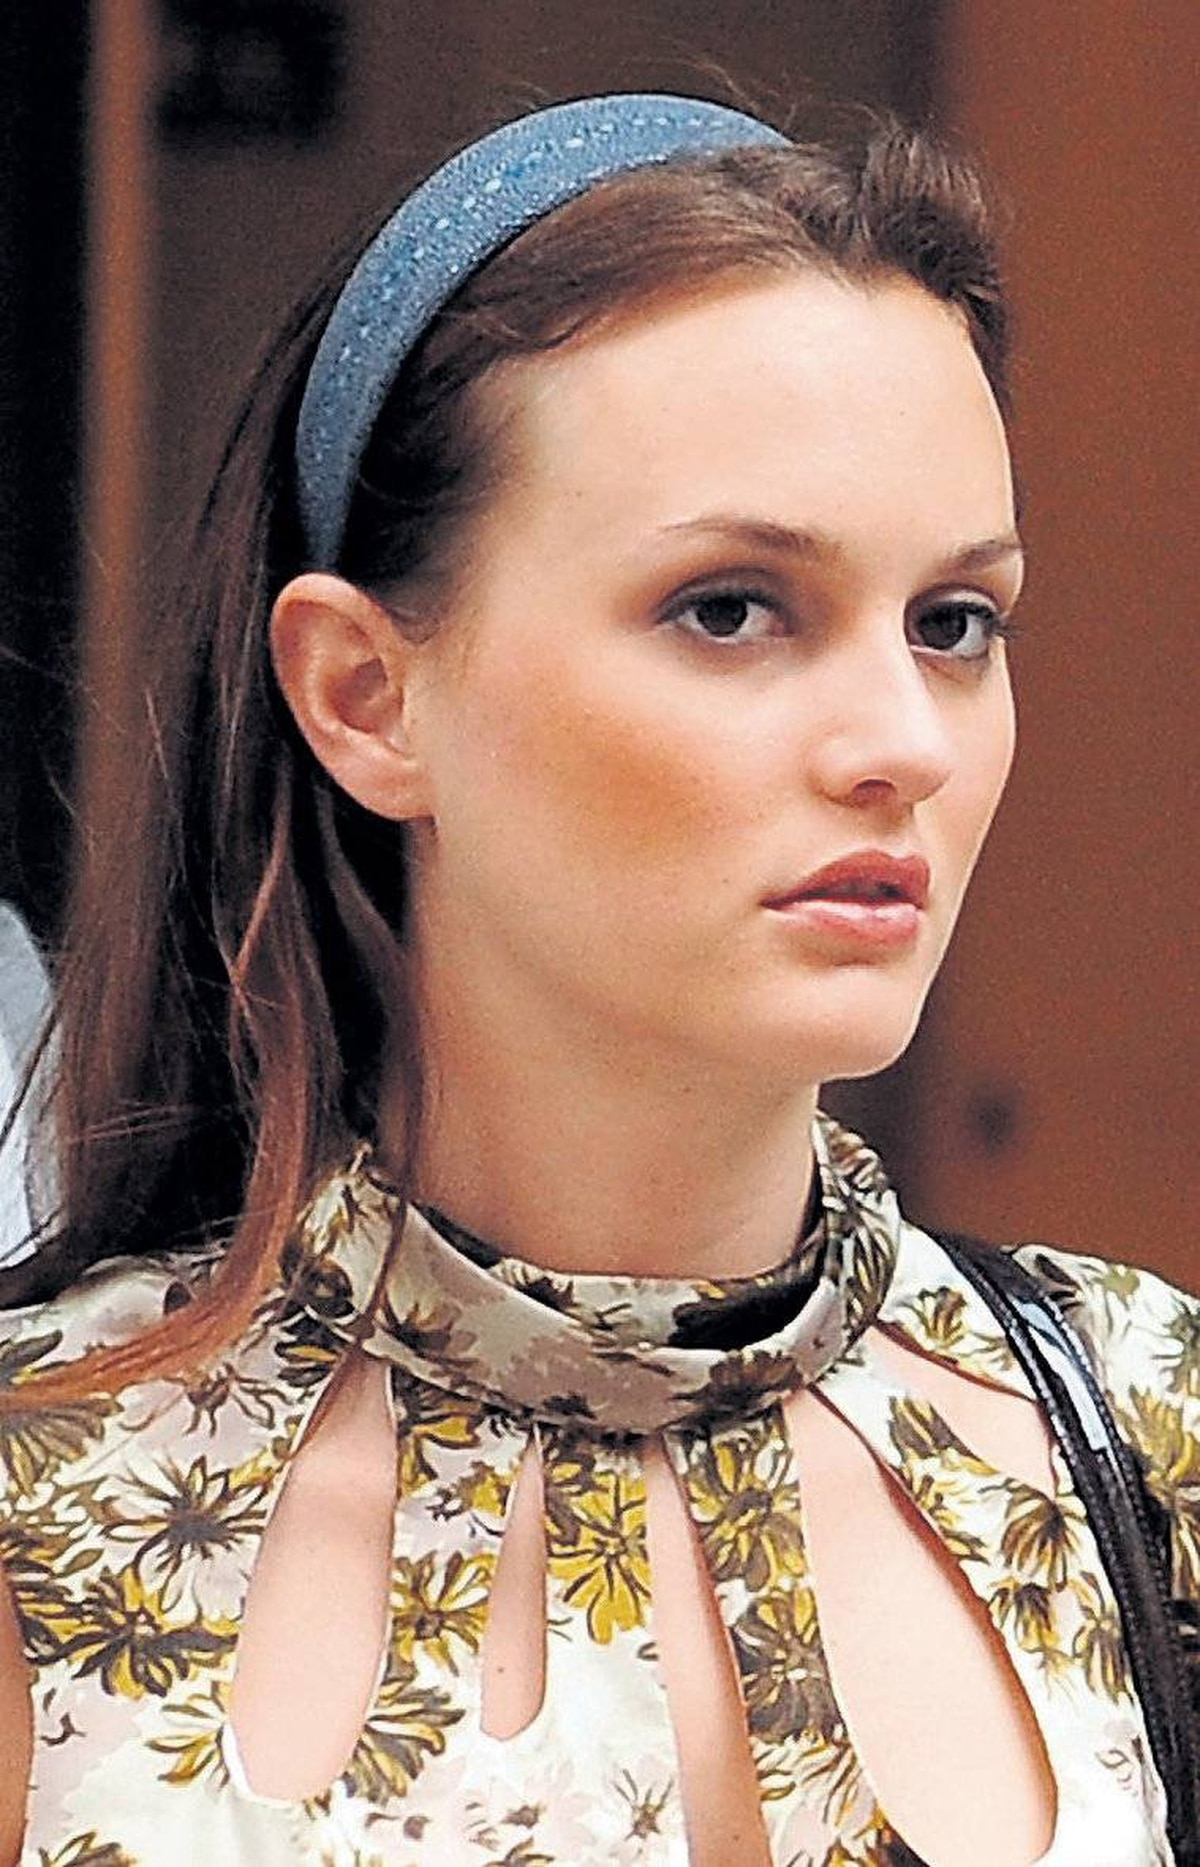 Leighton Meester: Head of the class